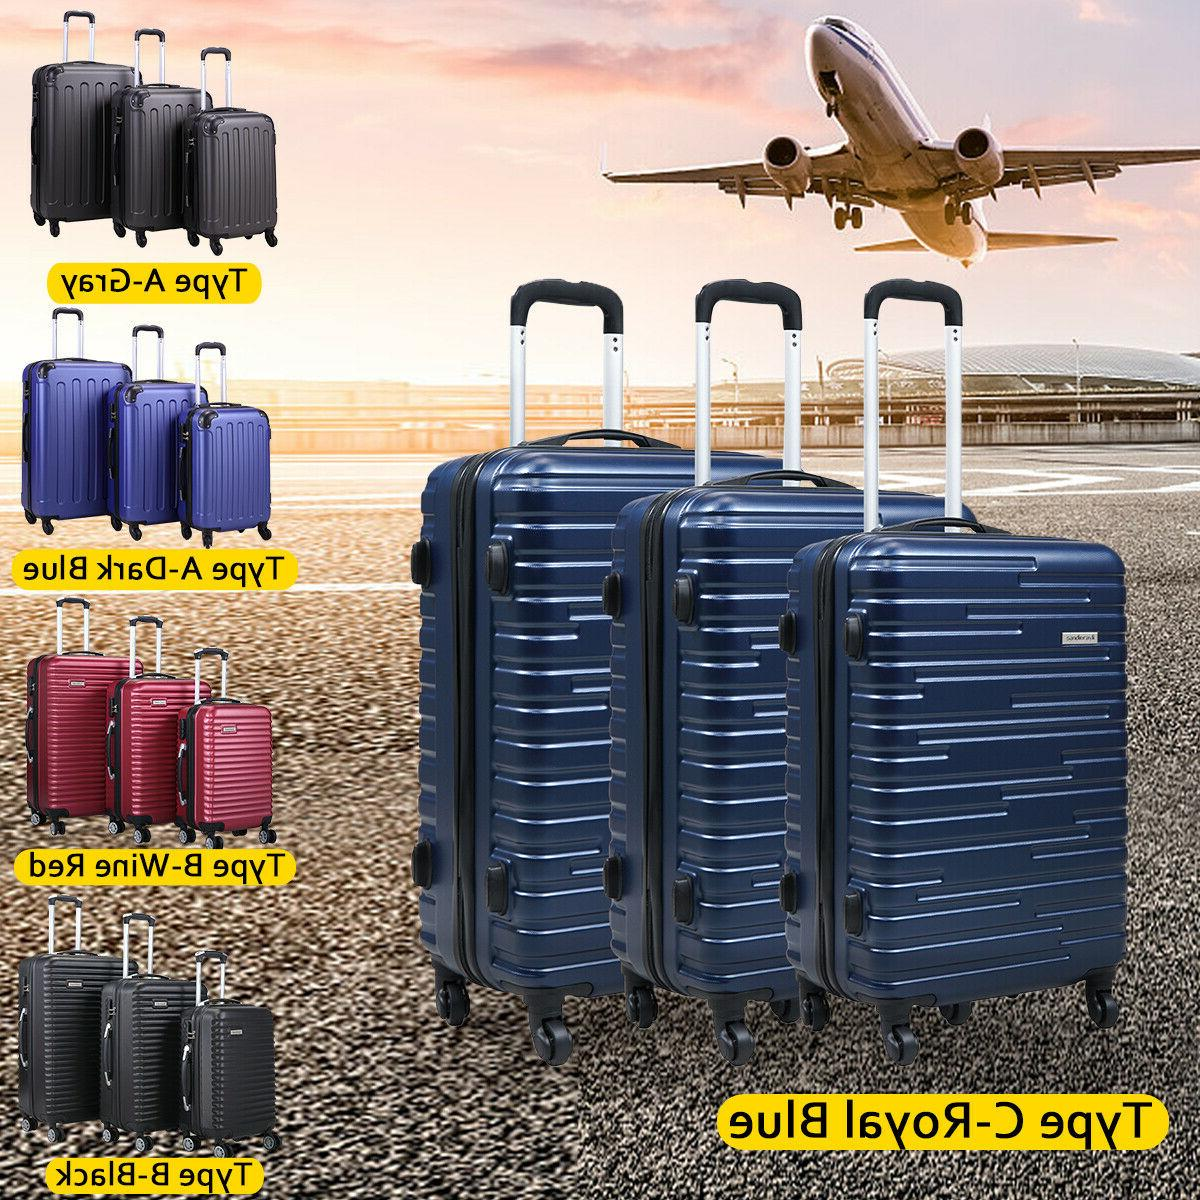 3 Pieces Luggage Set Carry On Trolley Suitcases Cover Travel